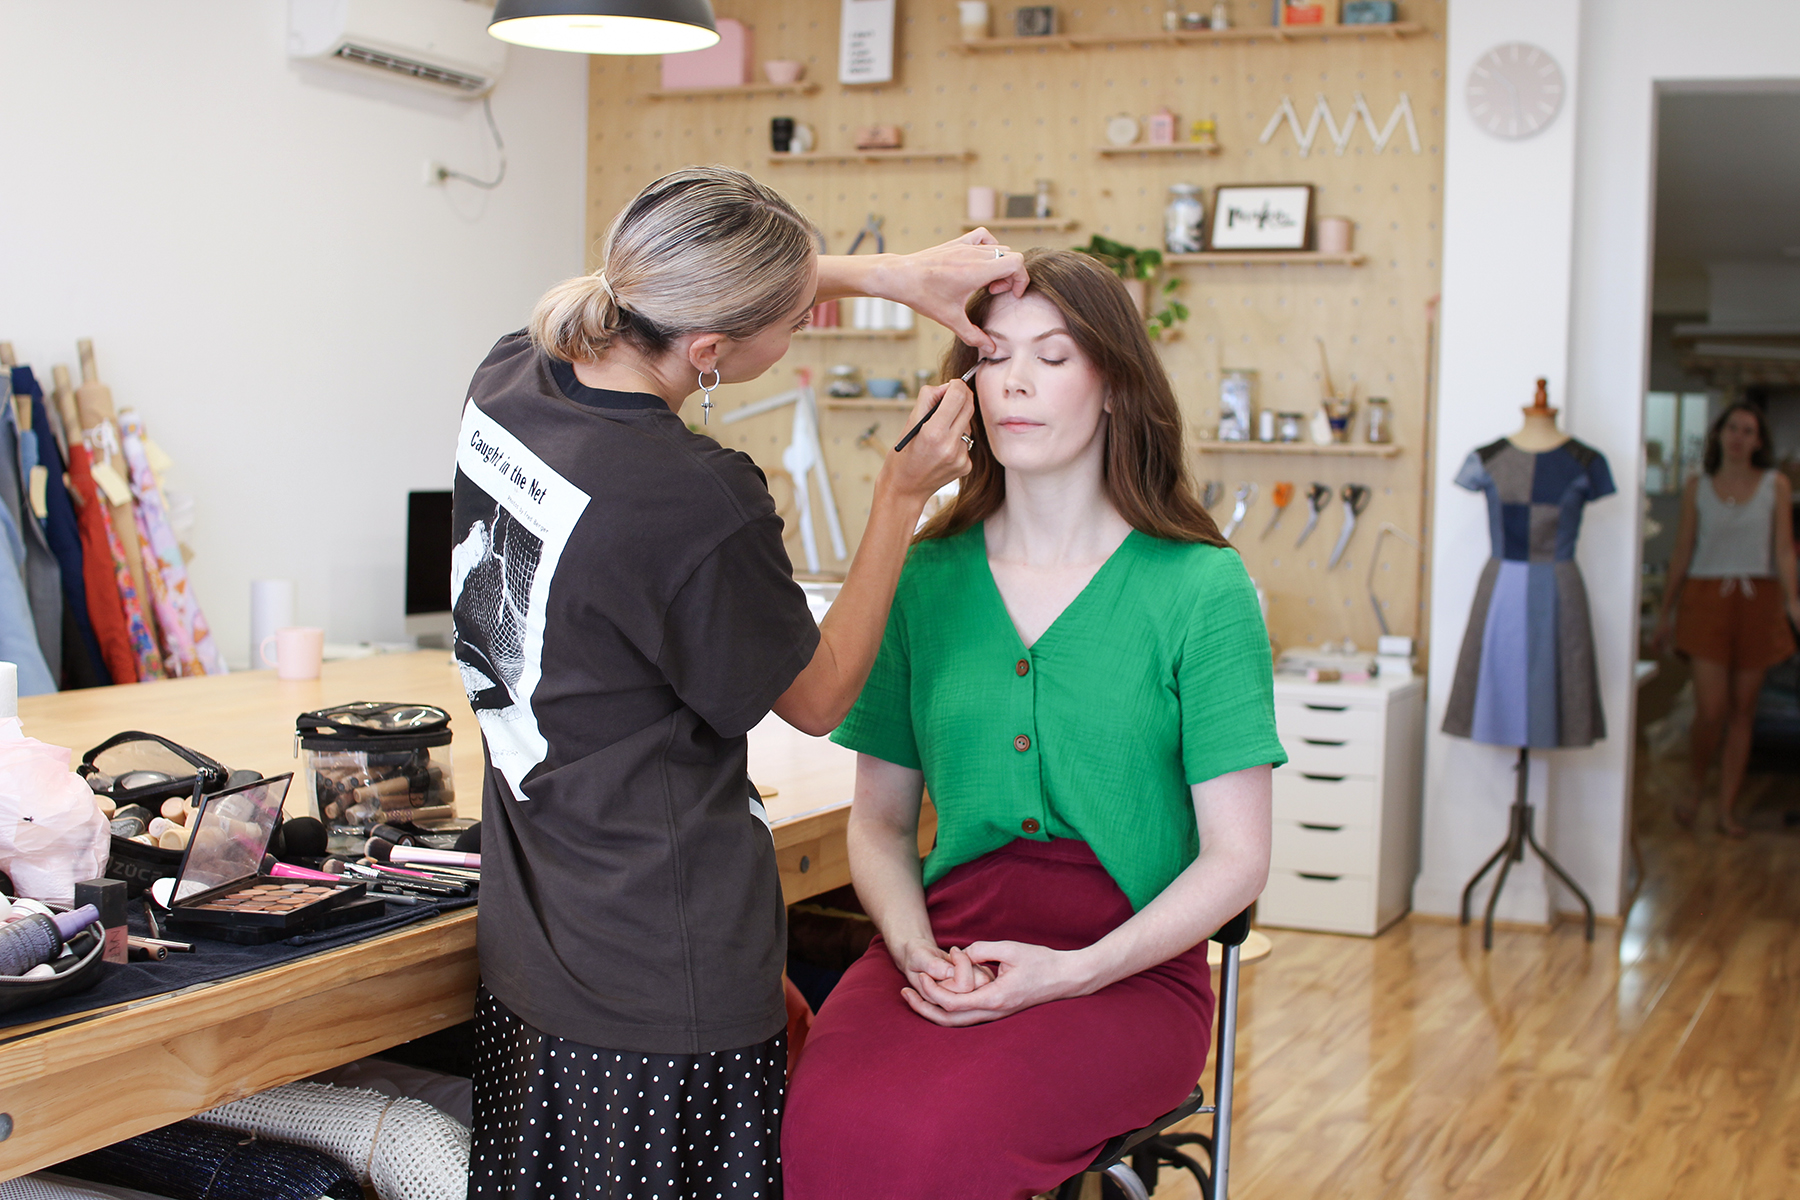 Sewing Community Project: Behind The Scenes - Roz Getting Her Make-Up Done